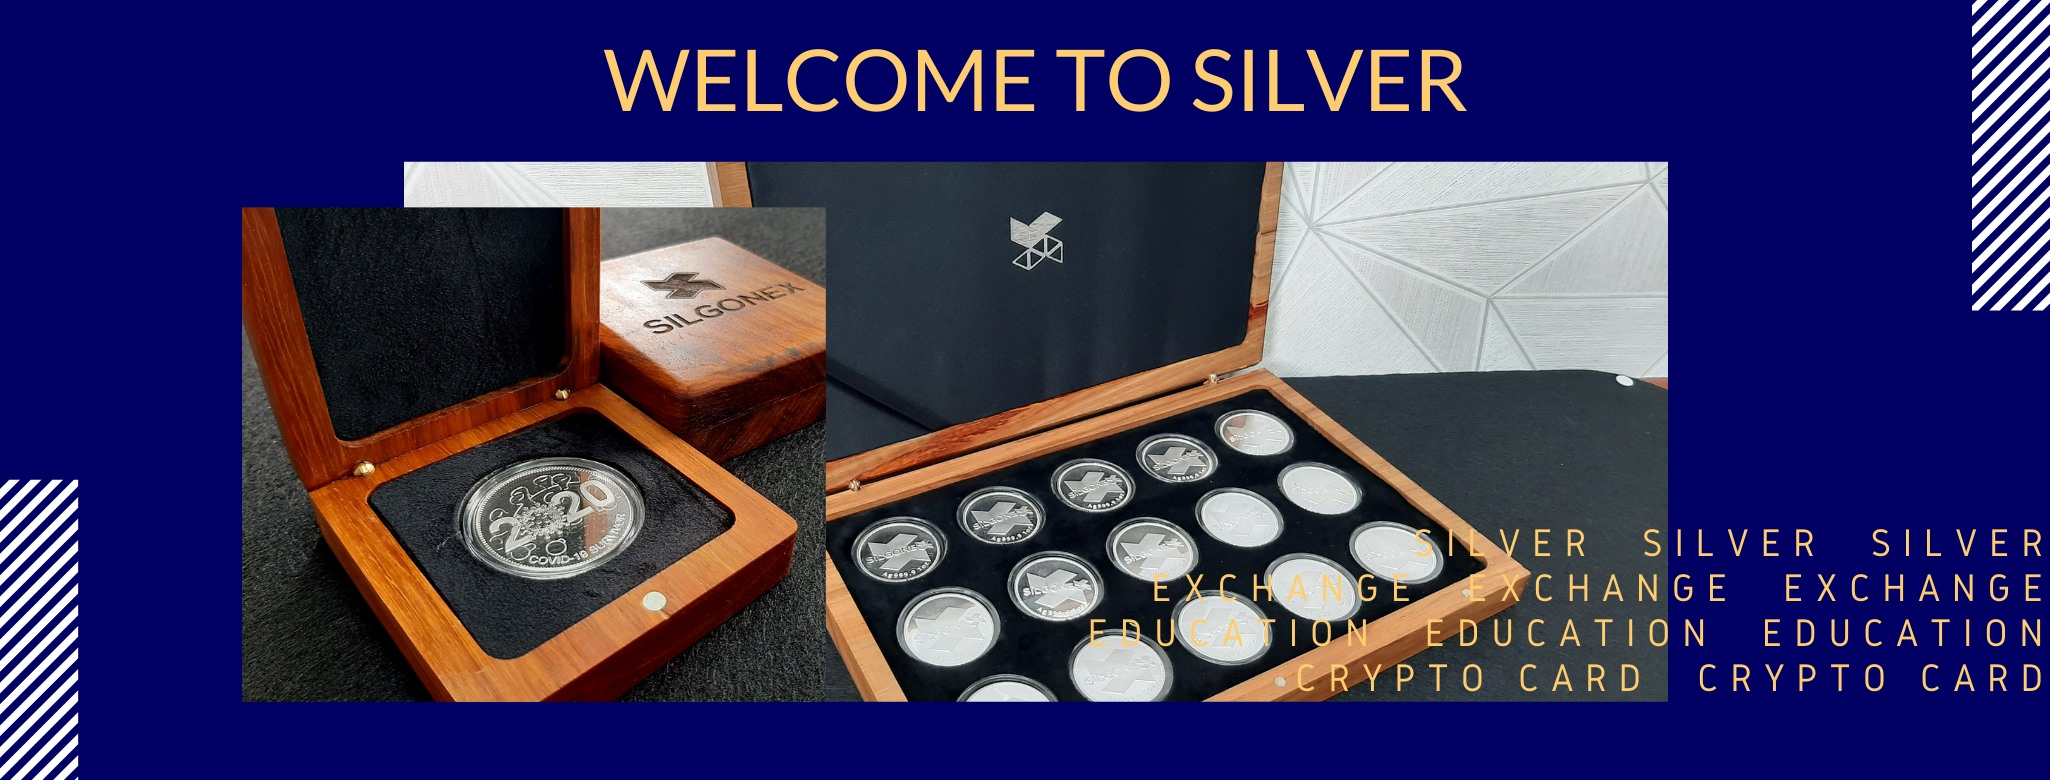 Do you want to own silver?